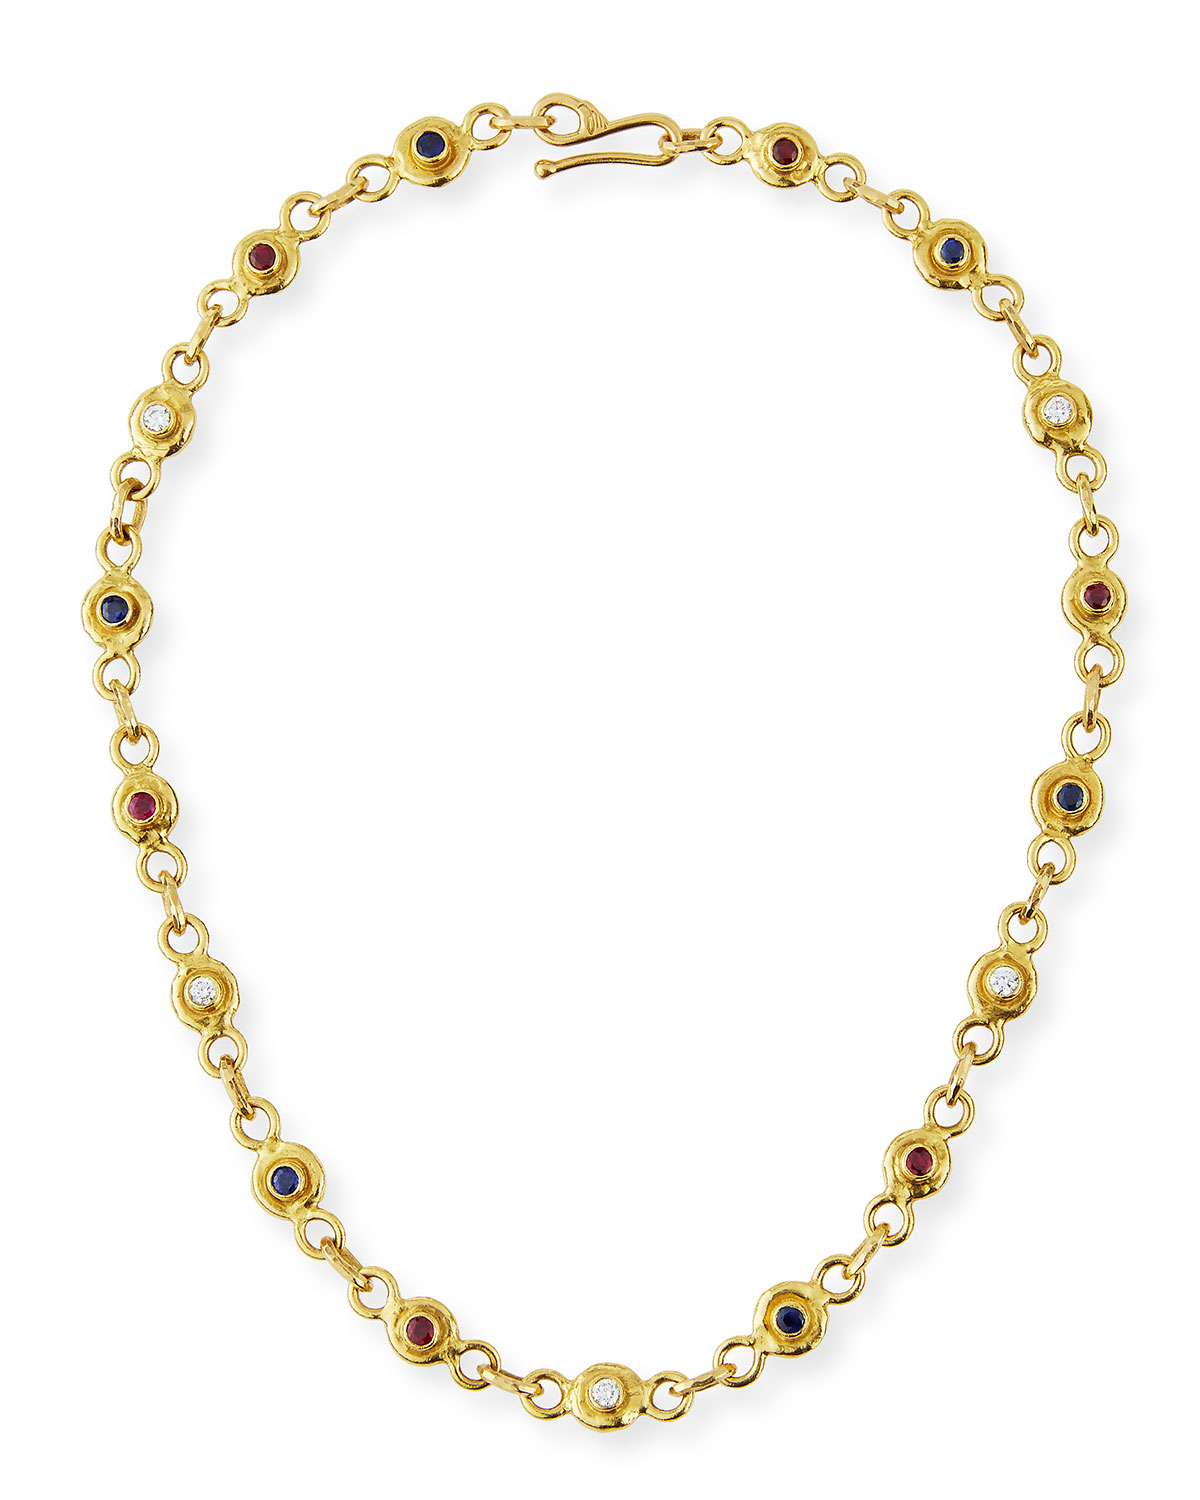 22K Gold Link Necklace with Diamonds